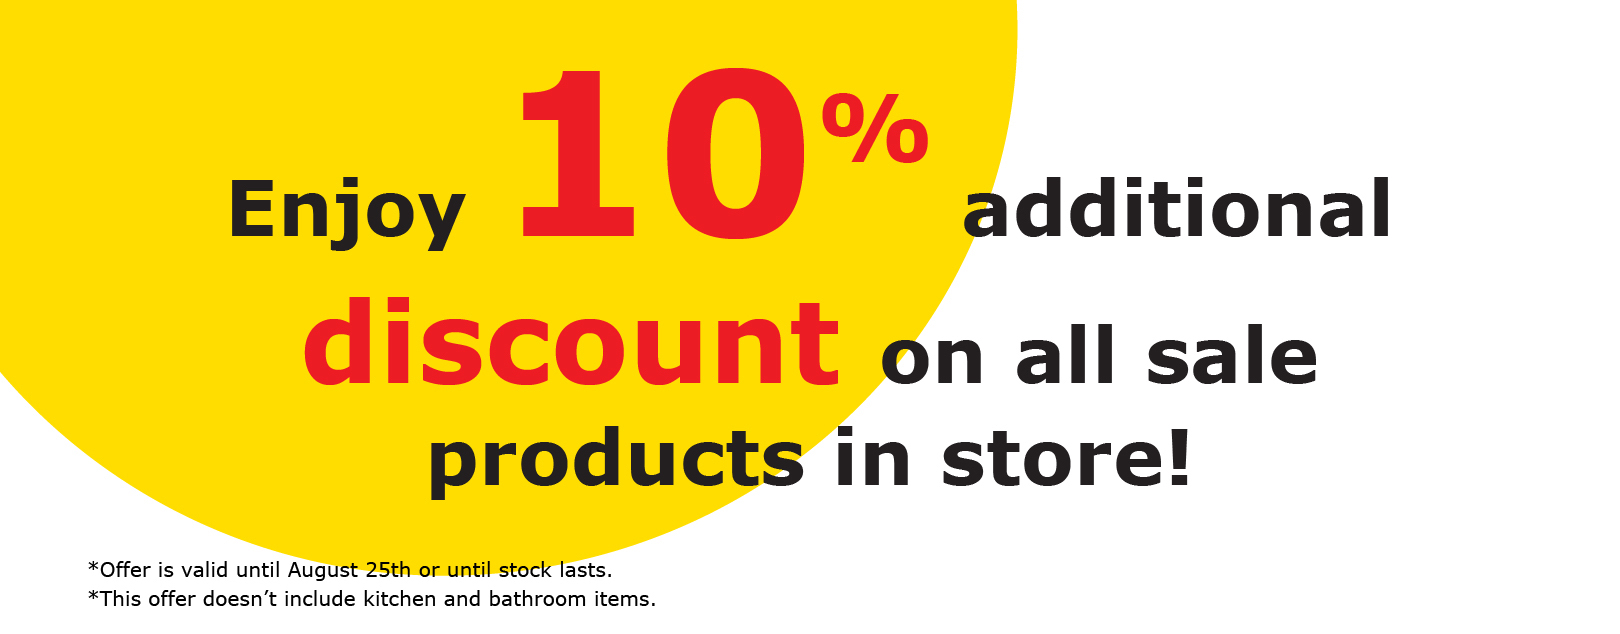 clearance sale additional 10 percent ikea jordan july august 2018